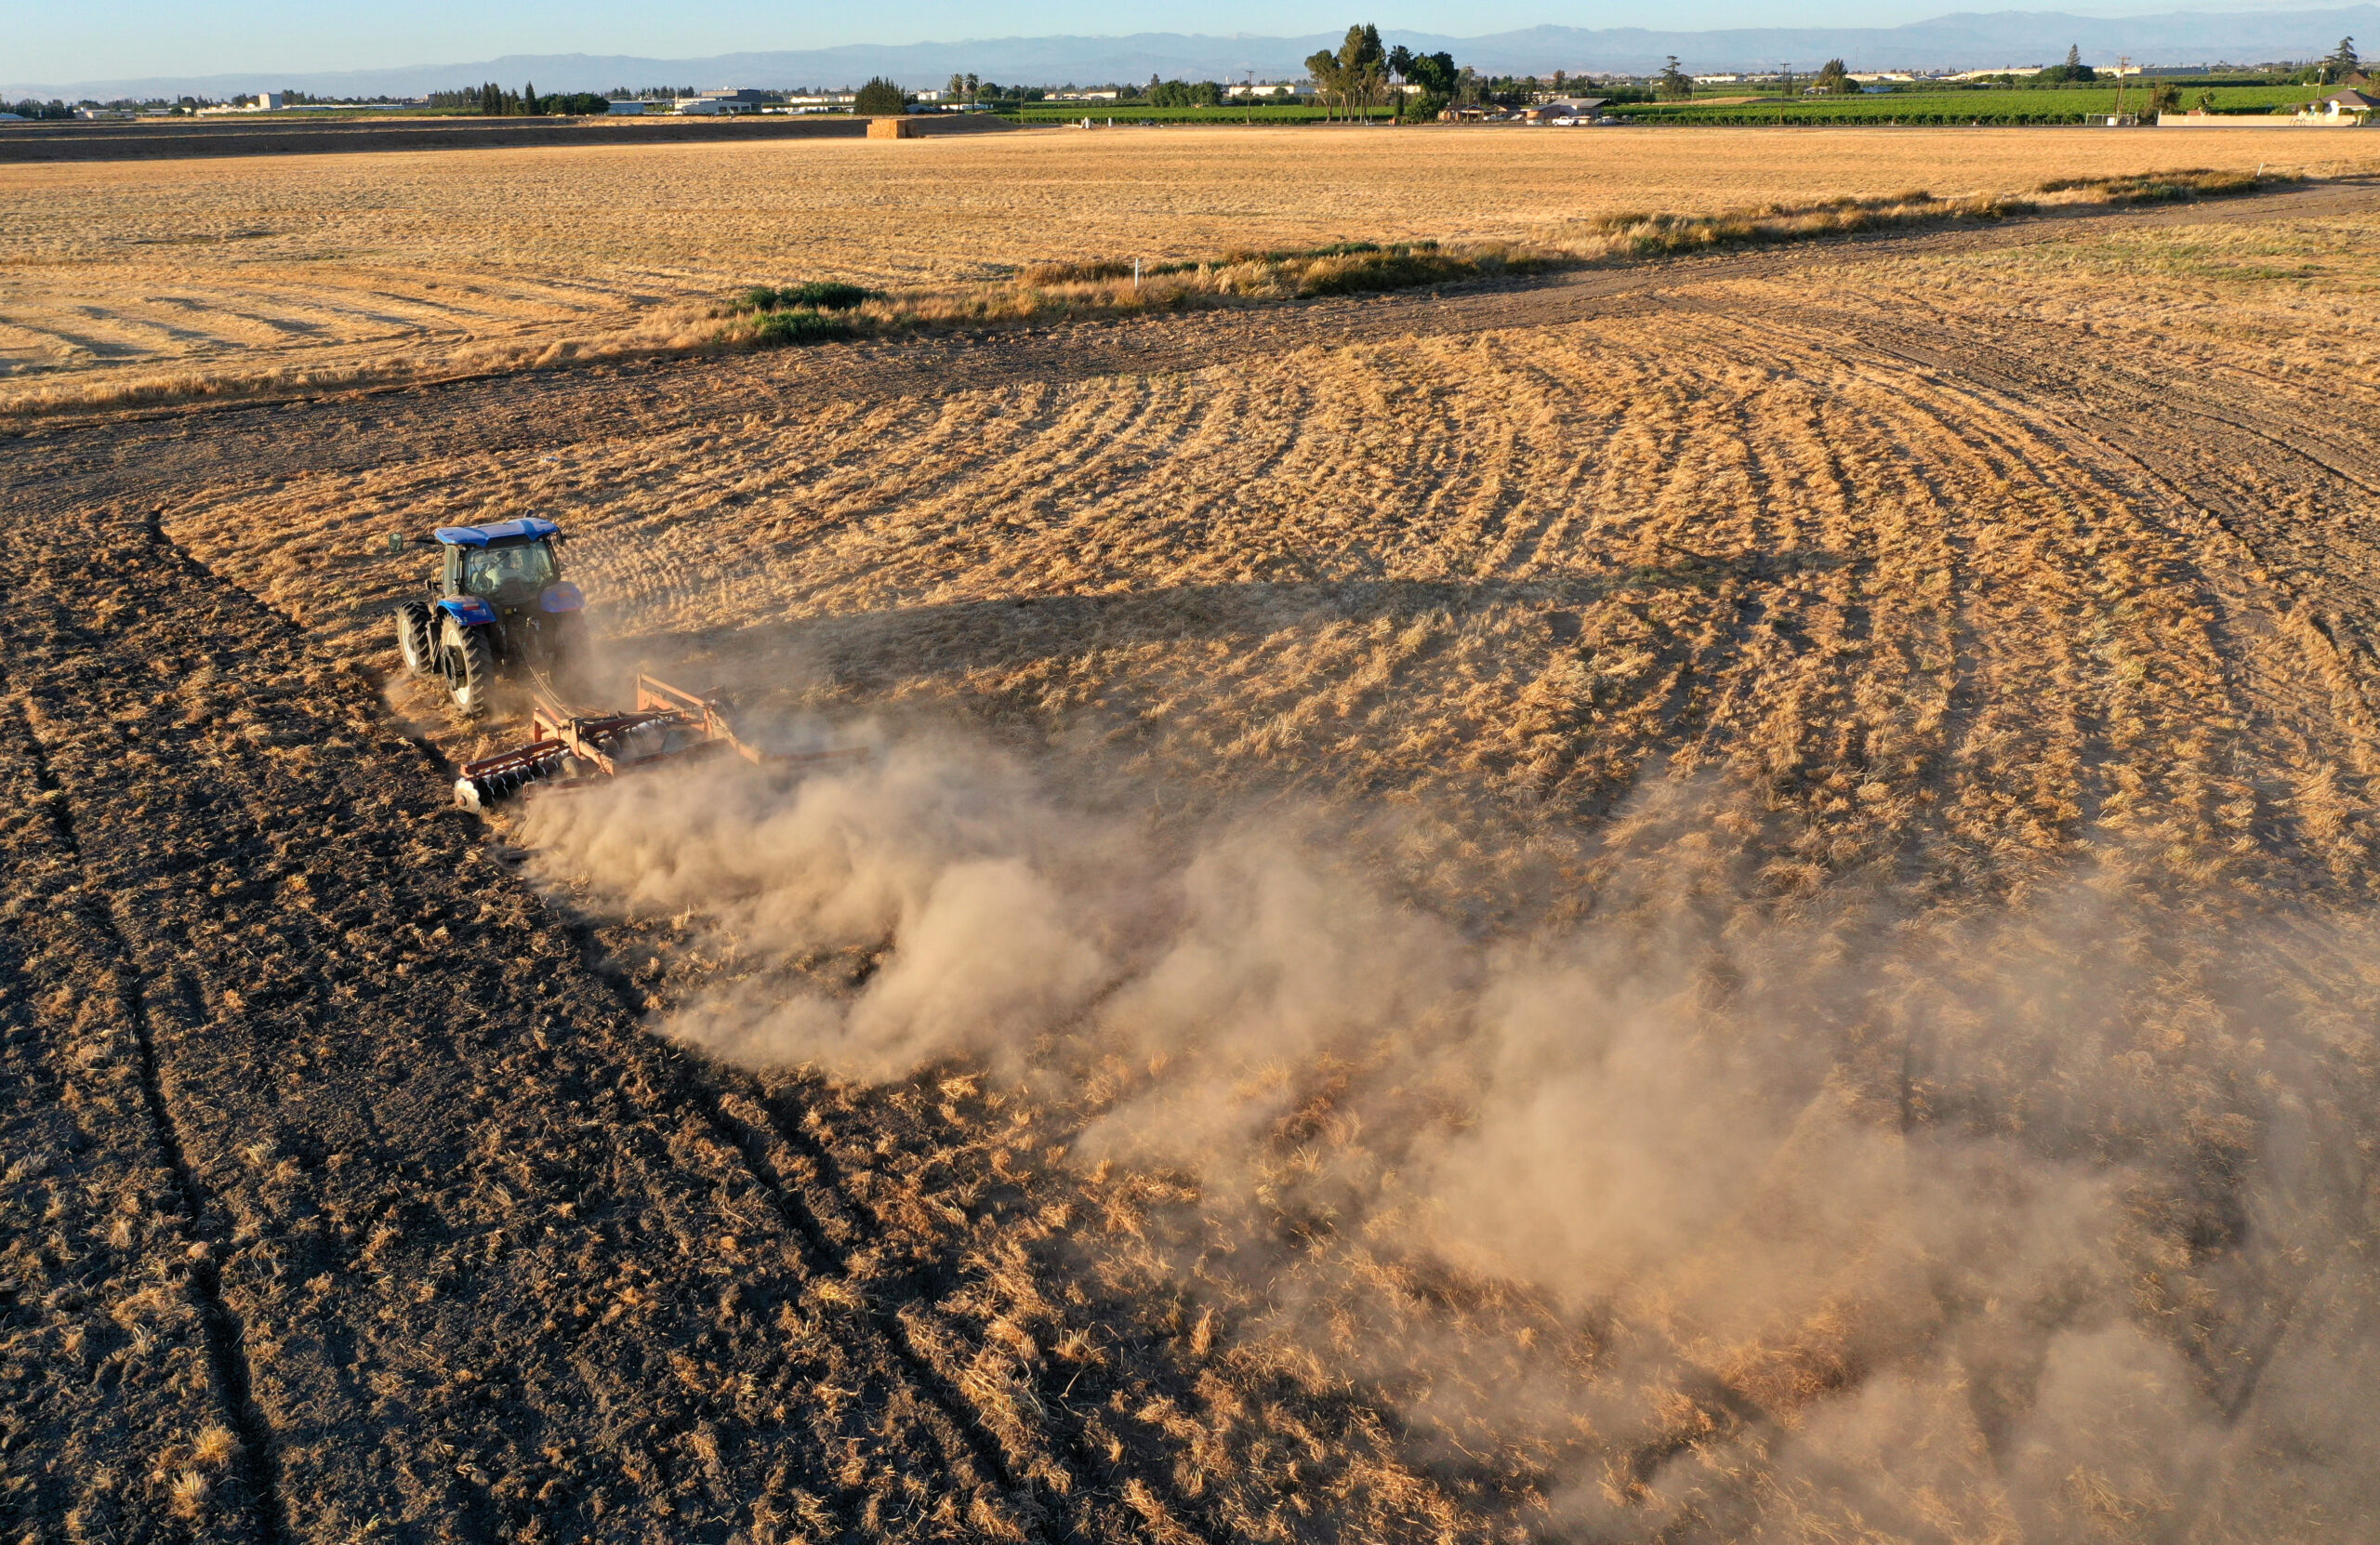 In an aerial view, a tractor kicks up dust as it plows a dry field on May 25, 2021 in Madera, California. As California enters an extreme drought emergency, water is starting to become scarce in California's Central Valley. Credit: Justin Sullivan/Getty Images